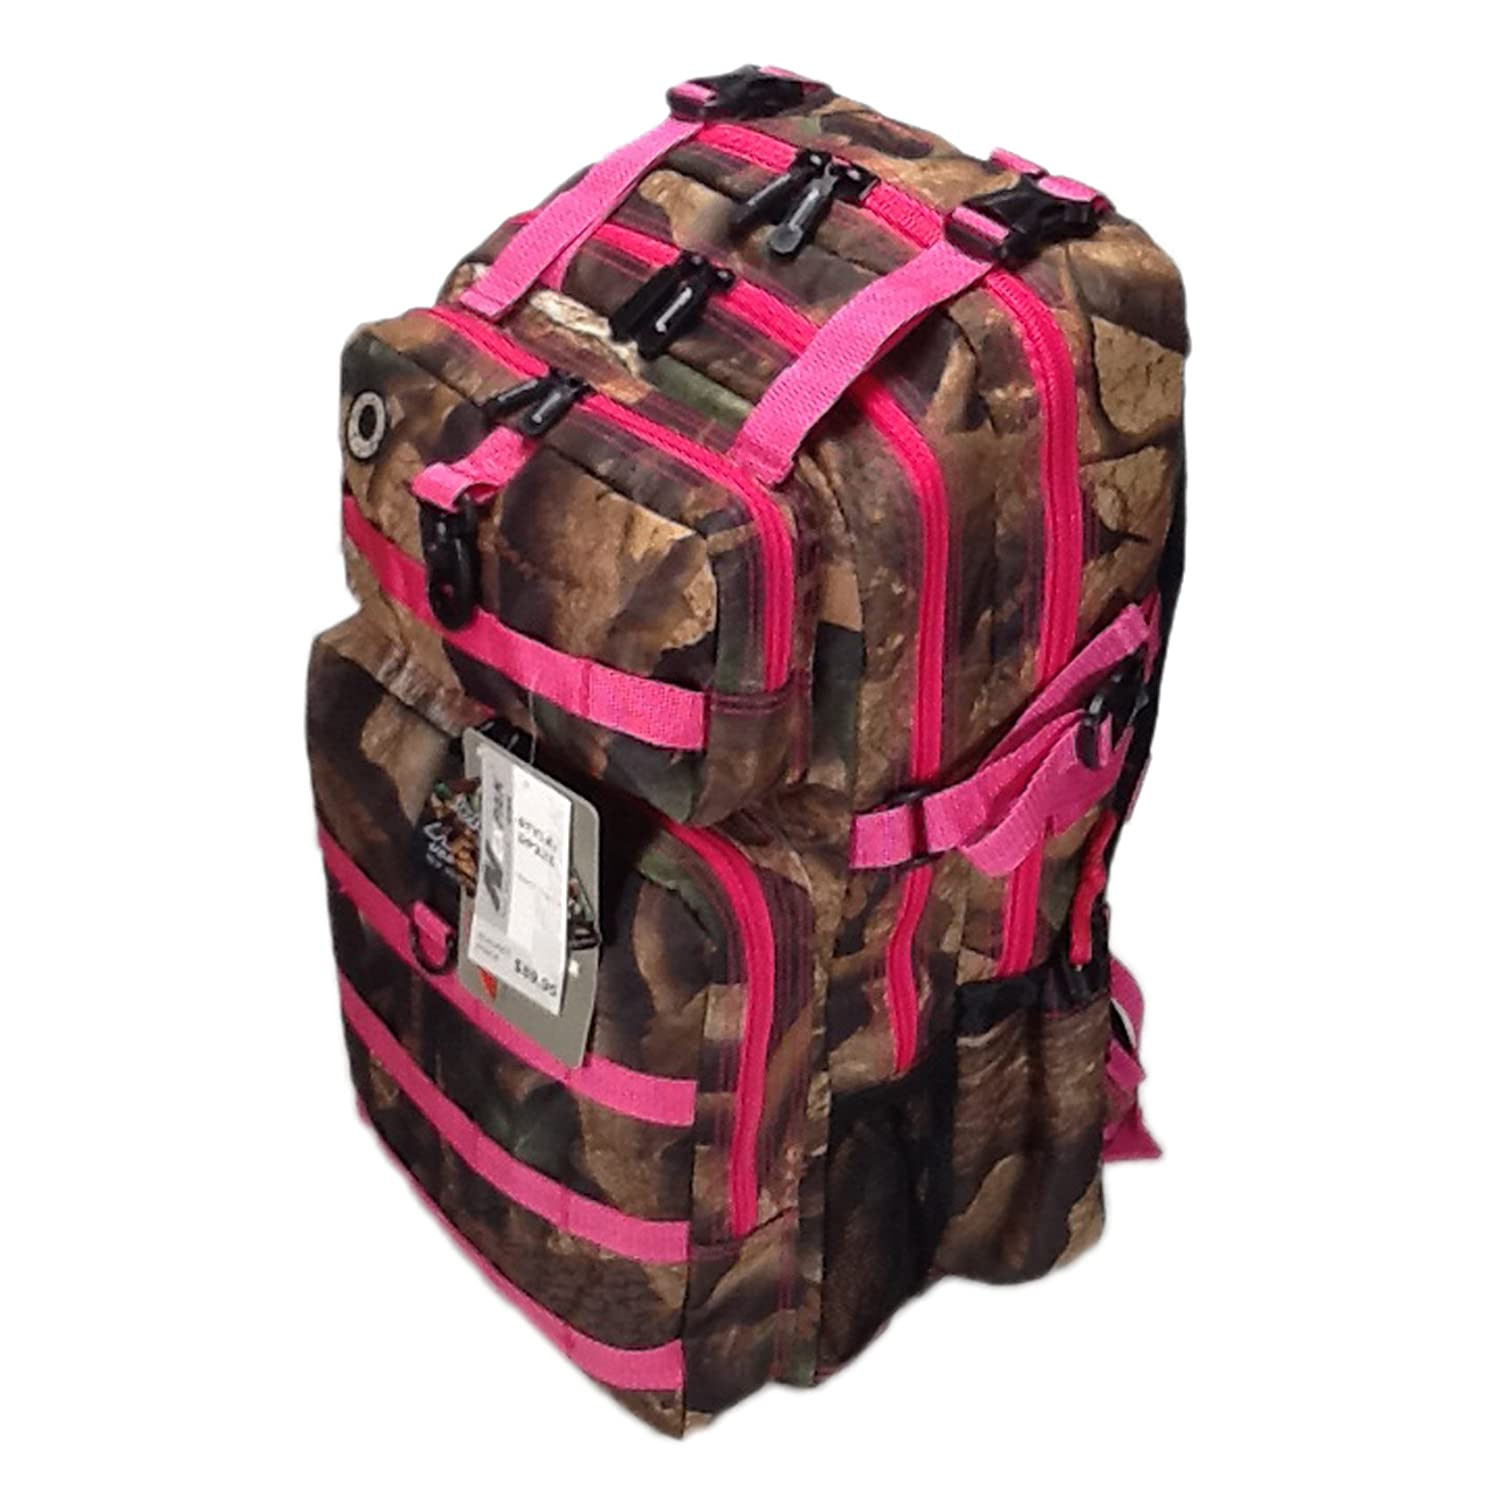 21inch 2000 cu in Great Hunting Camping Hiking Backpack DP321 DCPK Pink DIGITAL CAMOUFLAGE by Nexpak B00UD7B45U